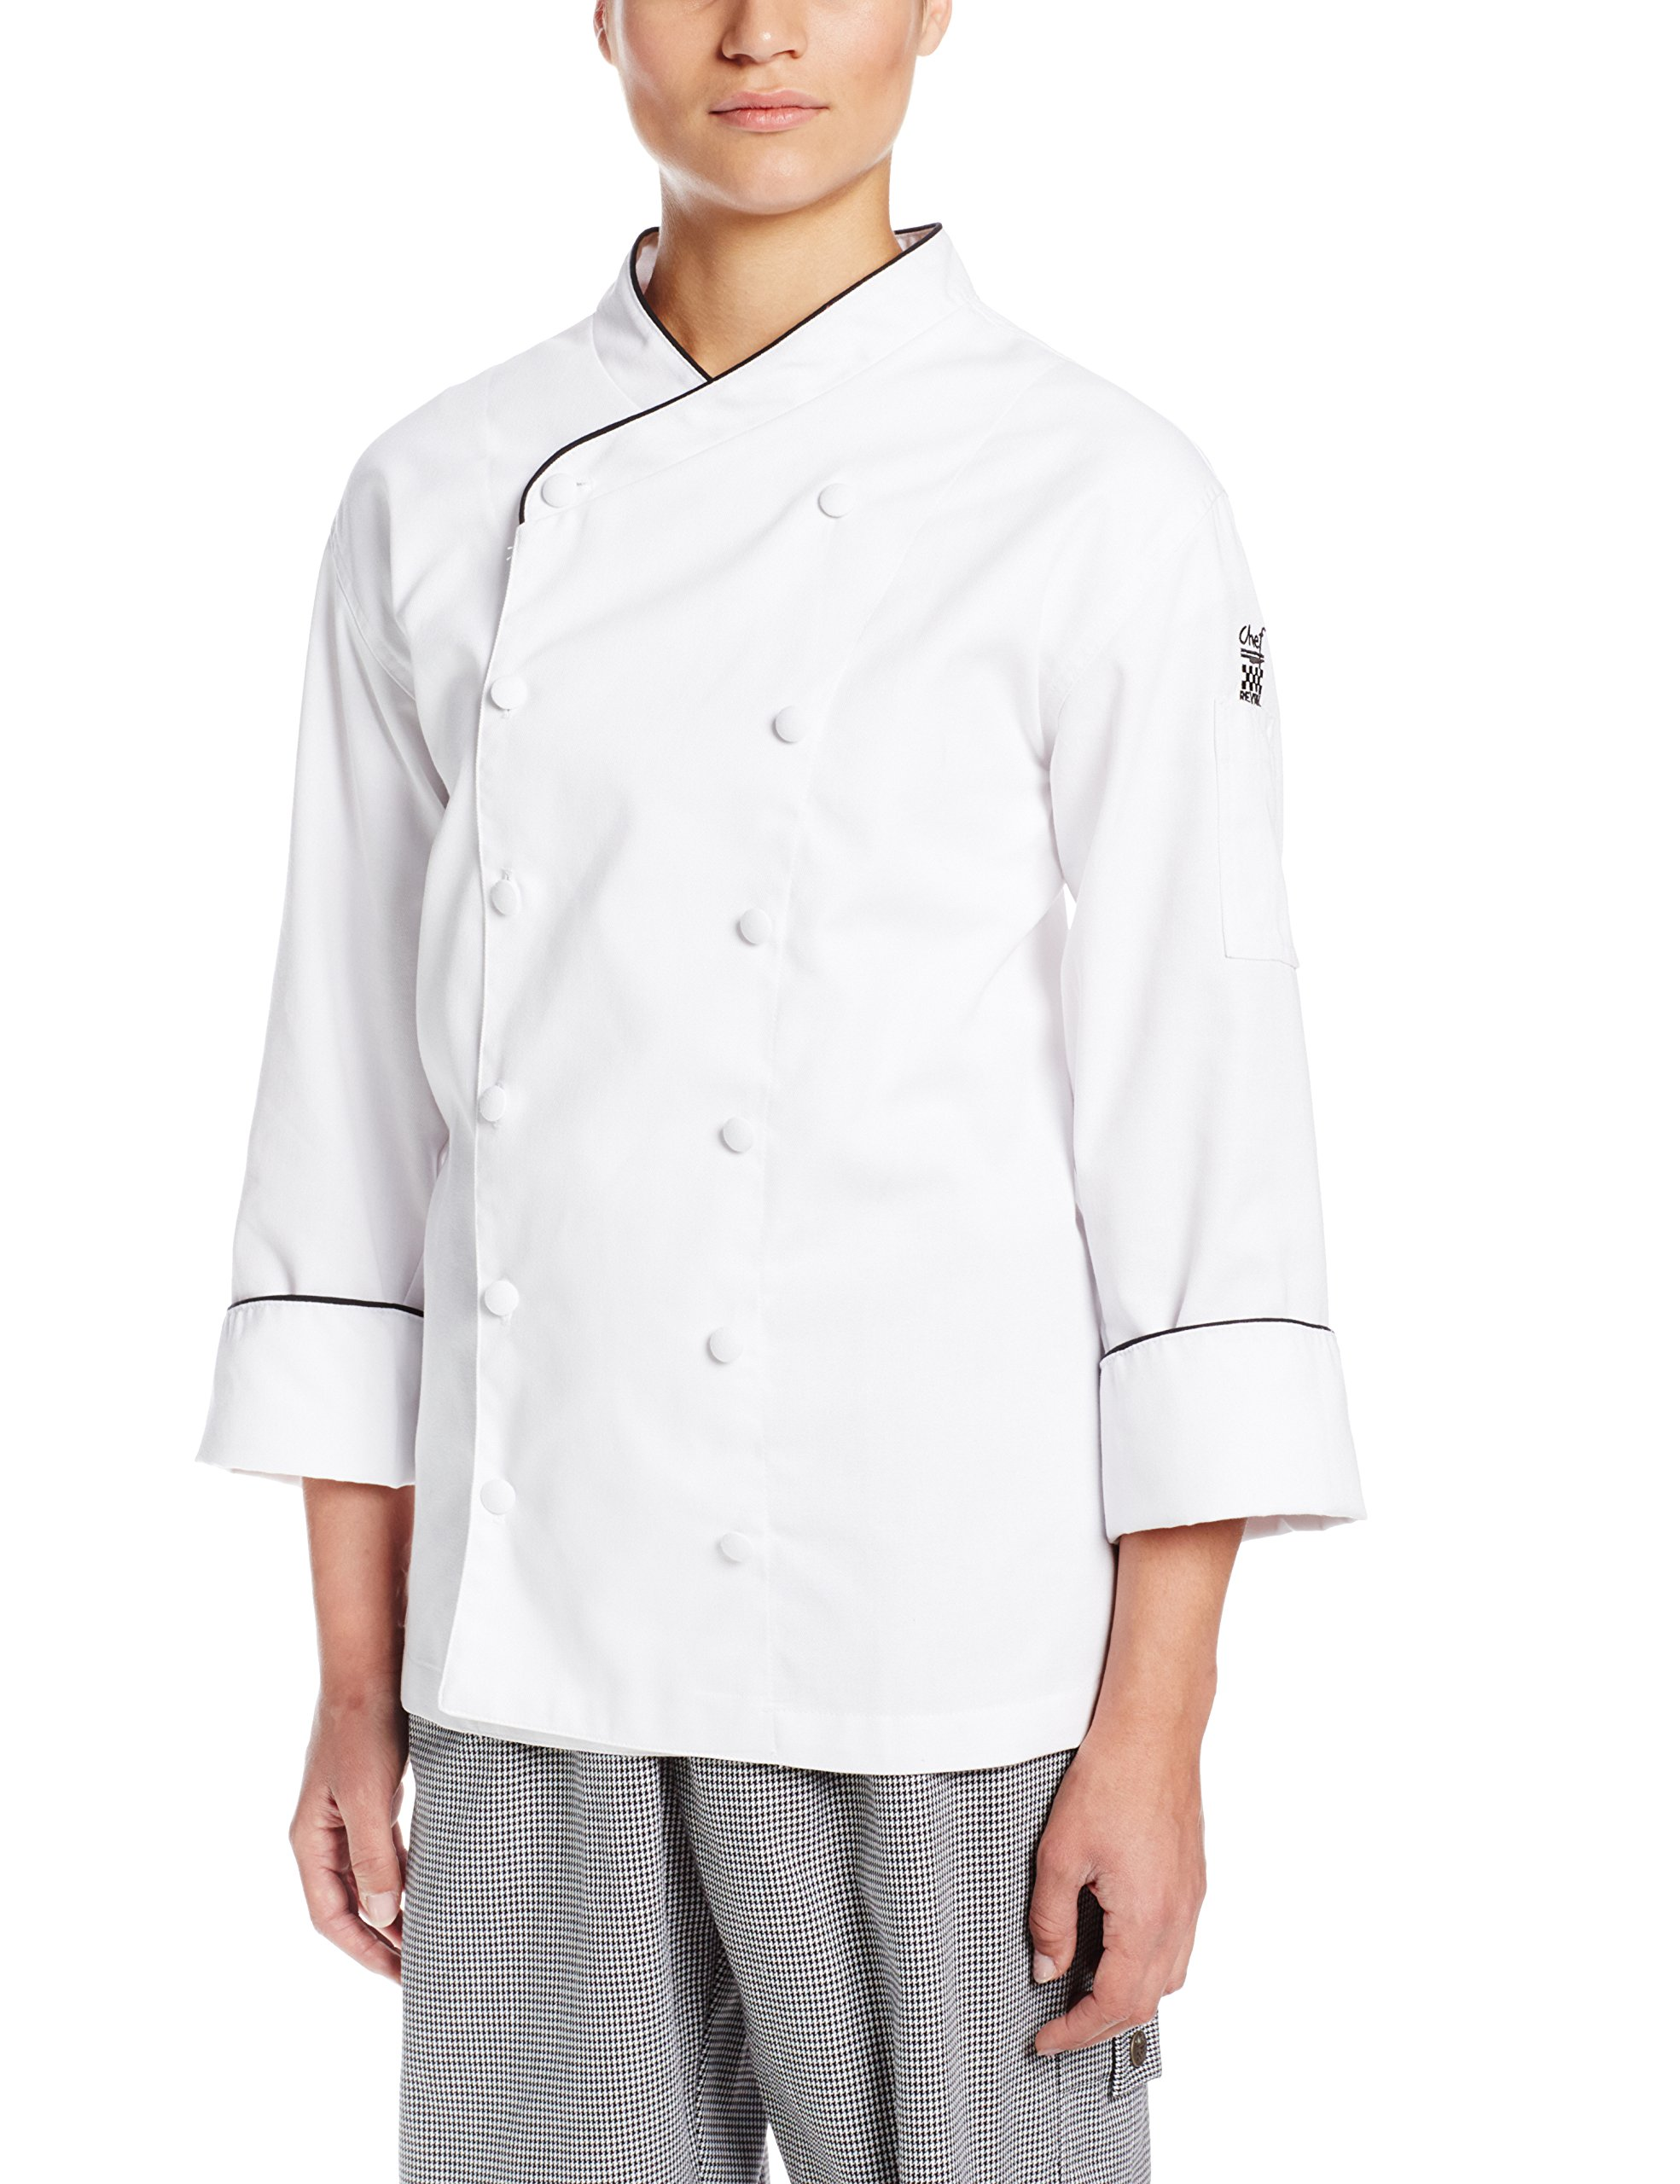 Chef Revival LJ008 Chef-tex Poly Cotton Ladies Corporate Jacket with Black Piping and Cloth Covered Button, Medium, White